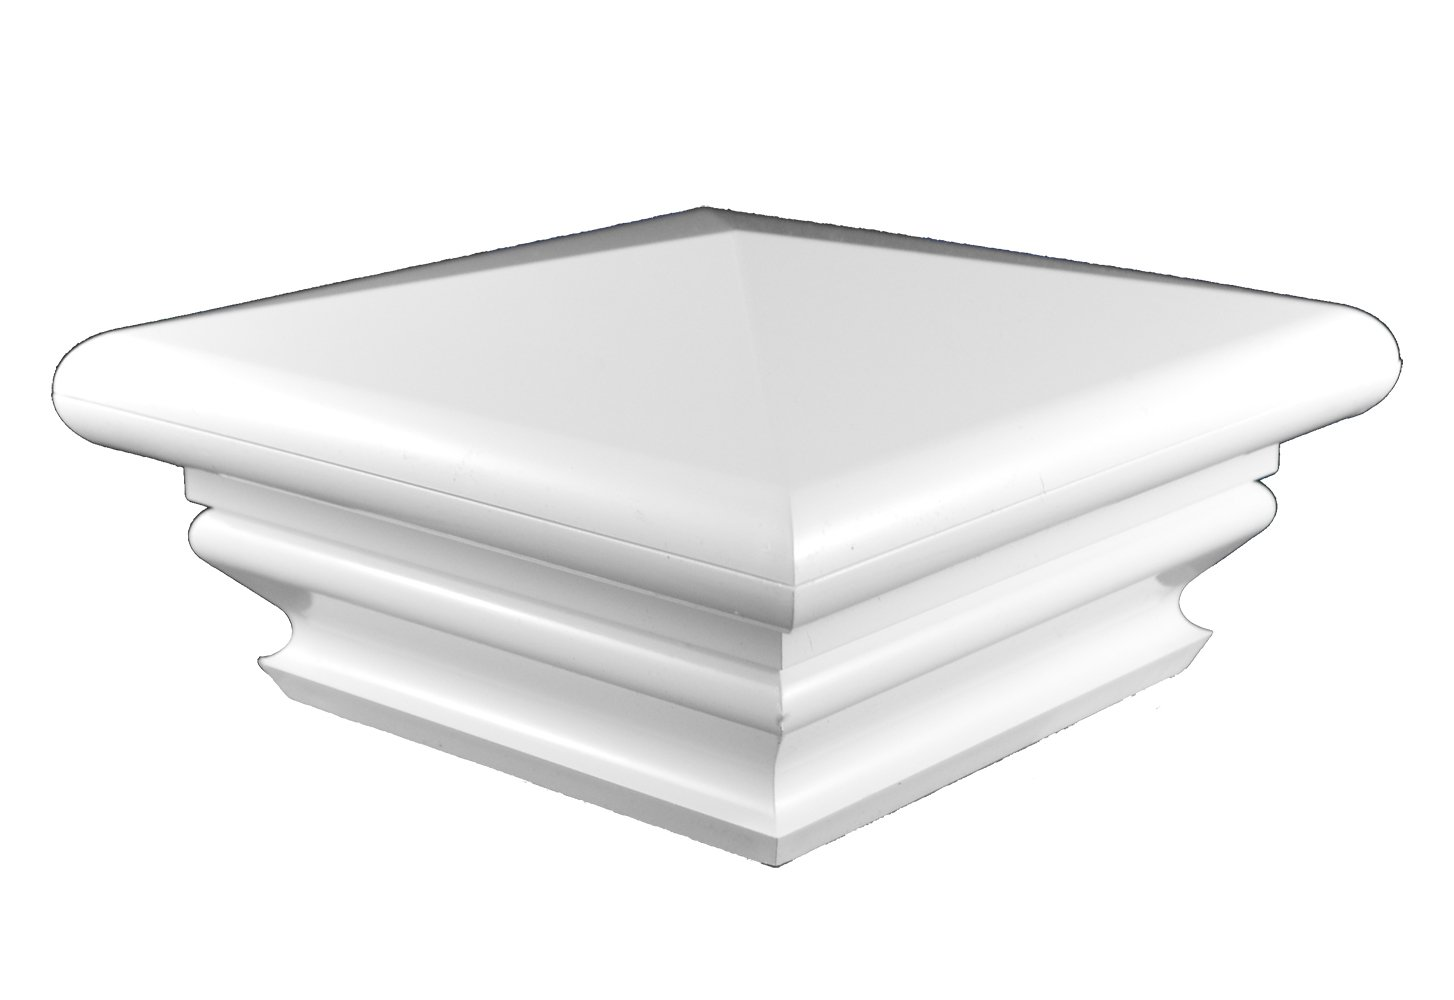 Durable White PVC Vinyl Federation Post Cap For A True 5 Inch X 5 Inch Post | Single Pack | AWCP-FED-5